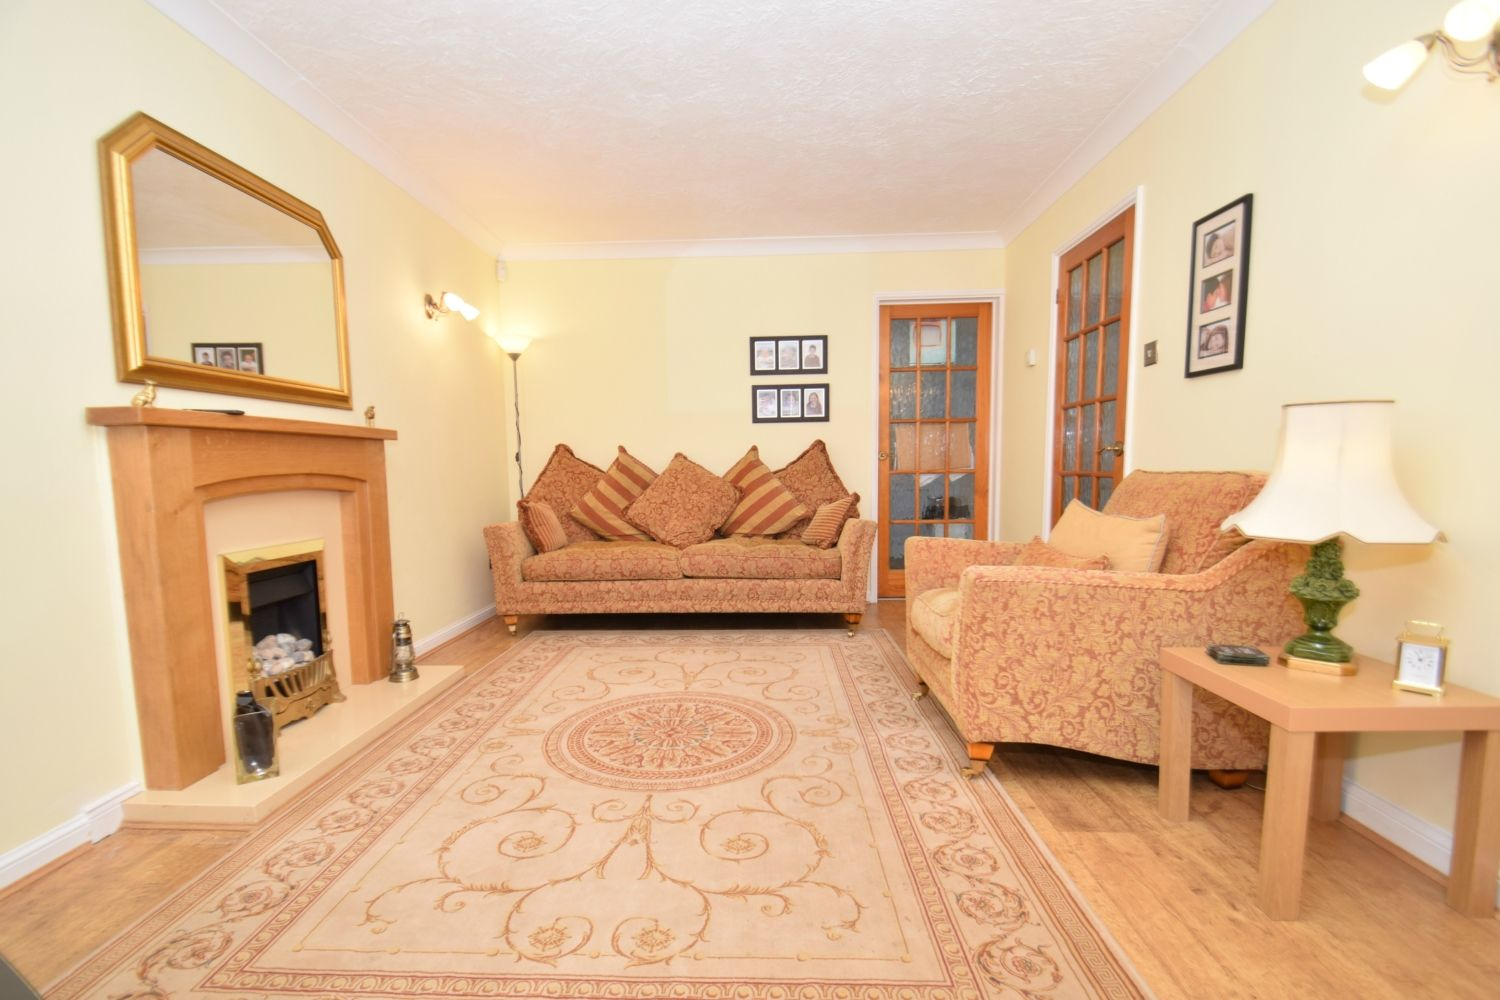 3 bed detached for sale in Foxes Close, Blackwell, B60 5